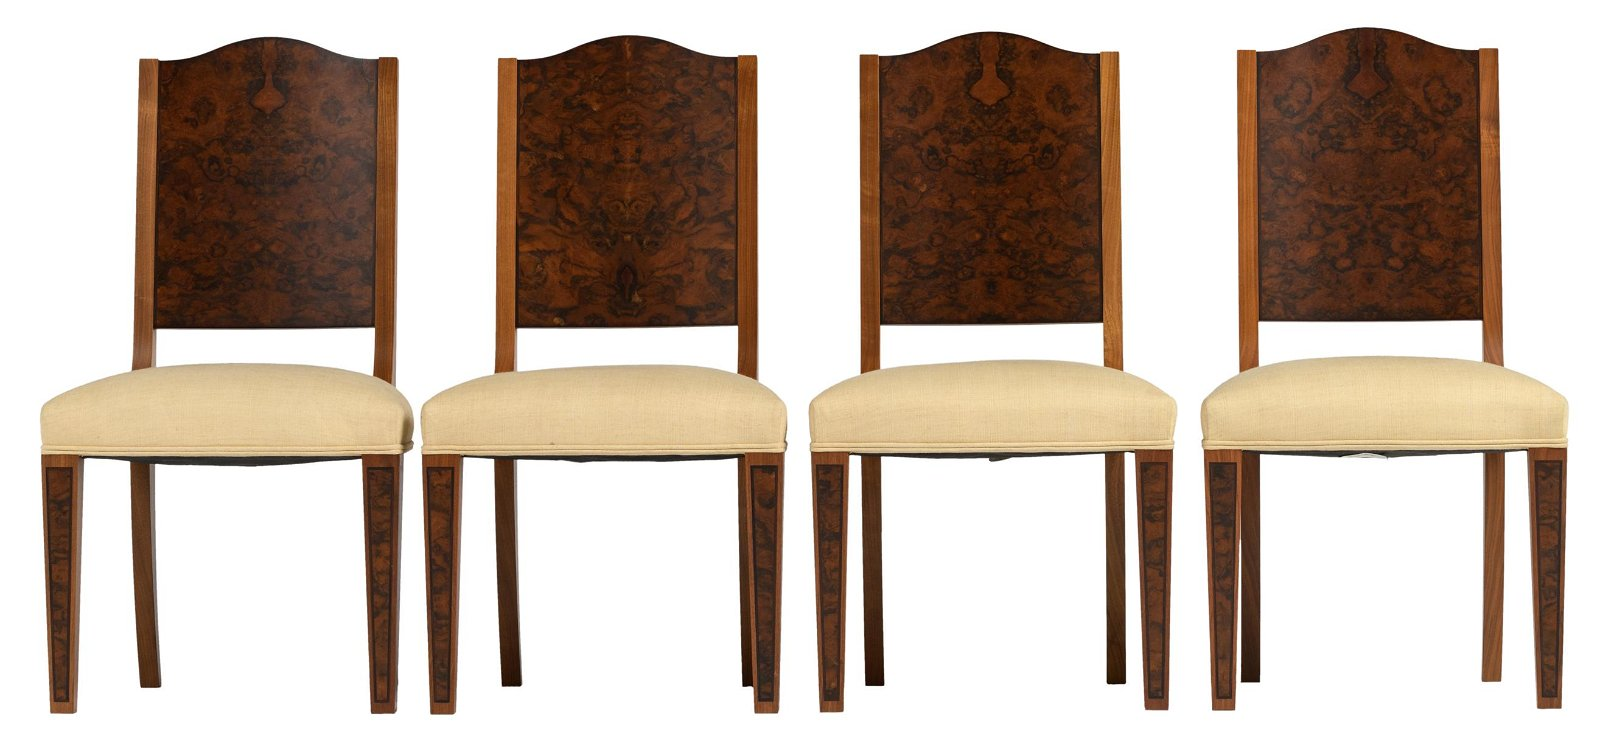 A set of four walnut and burl marquetry chairs by David